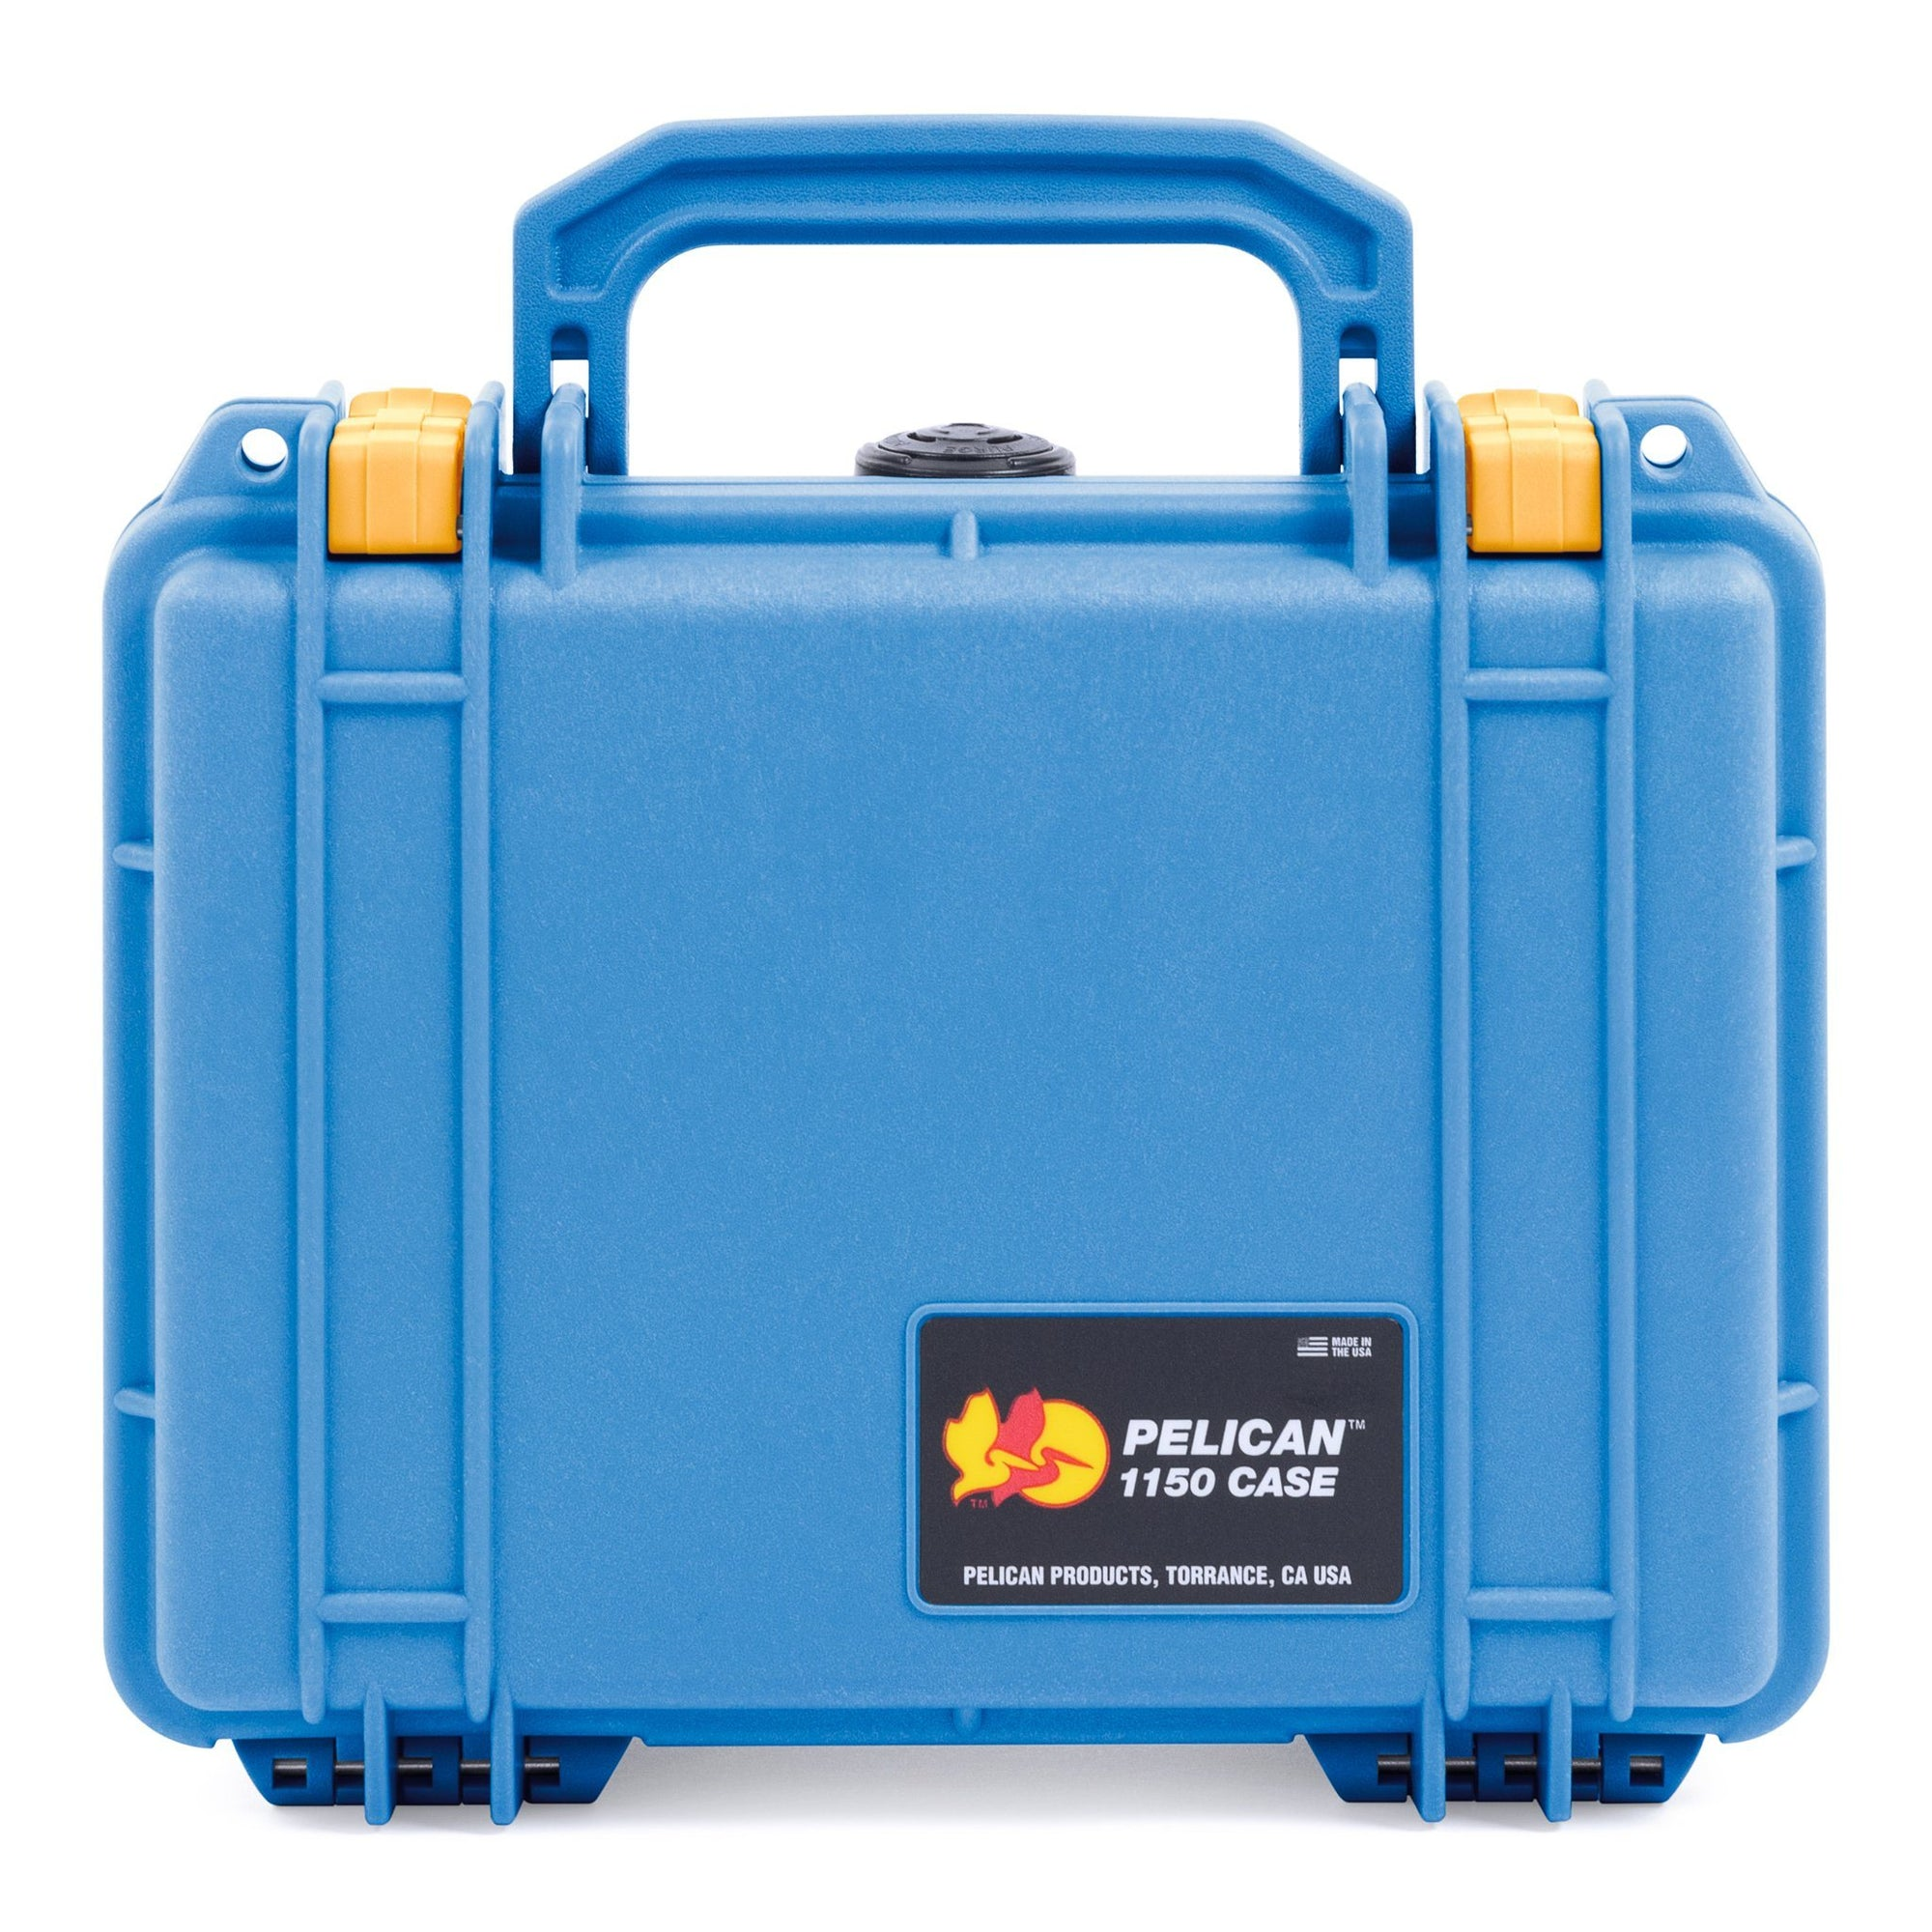 Pelican 1150 Case, Blue with Yellow Latches - Pelican Color Case